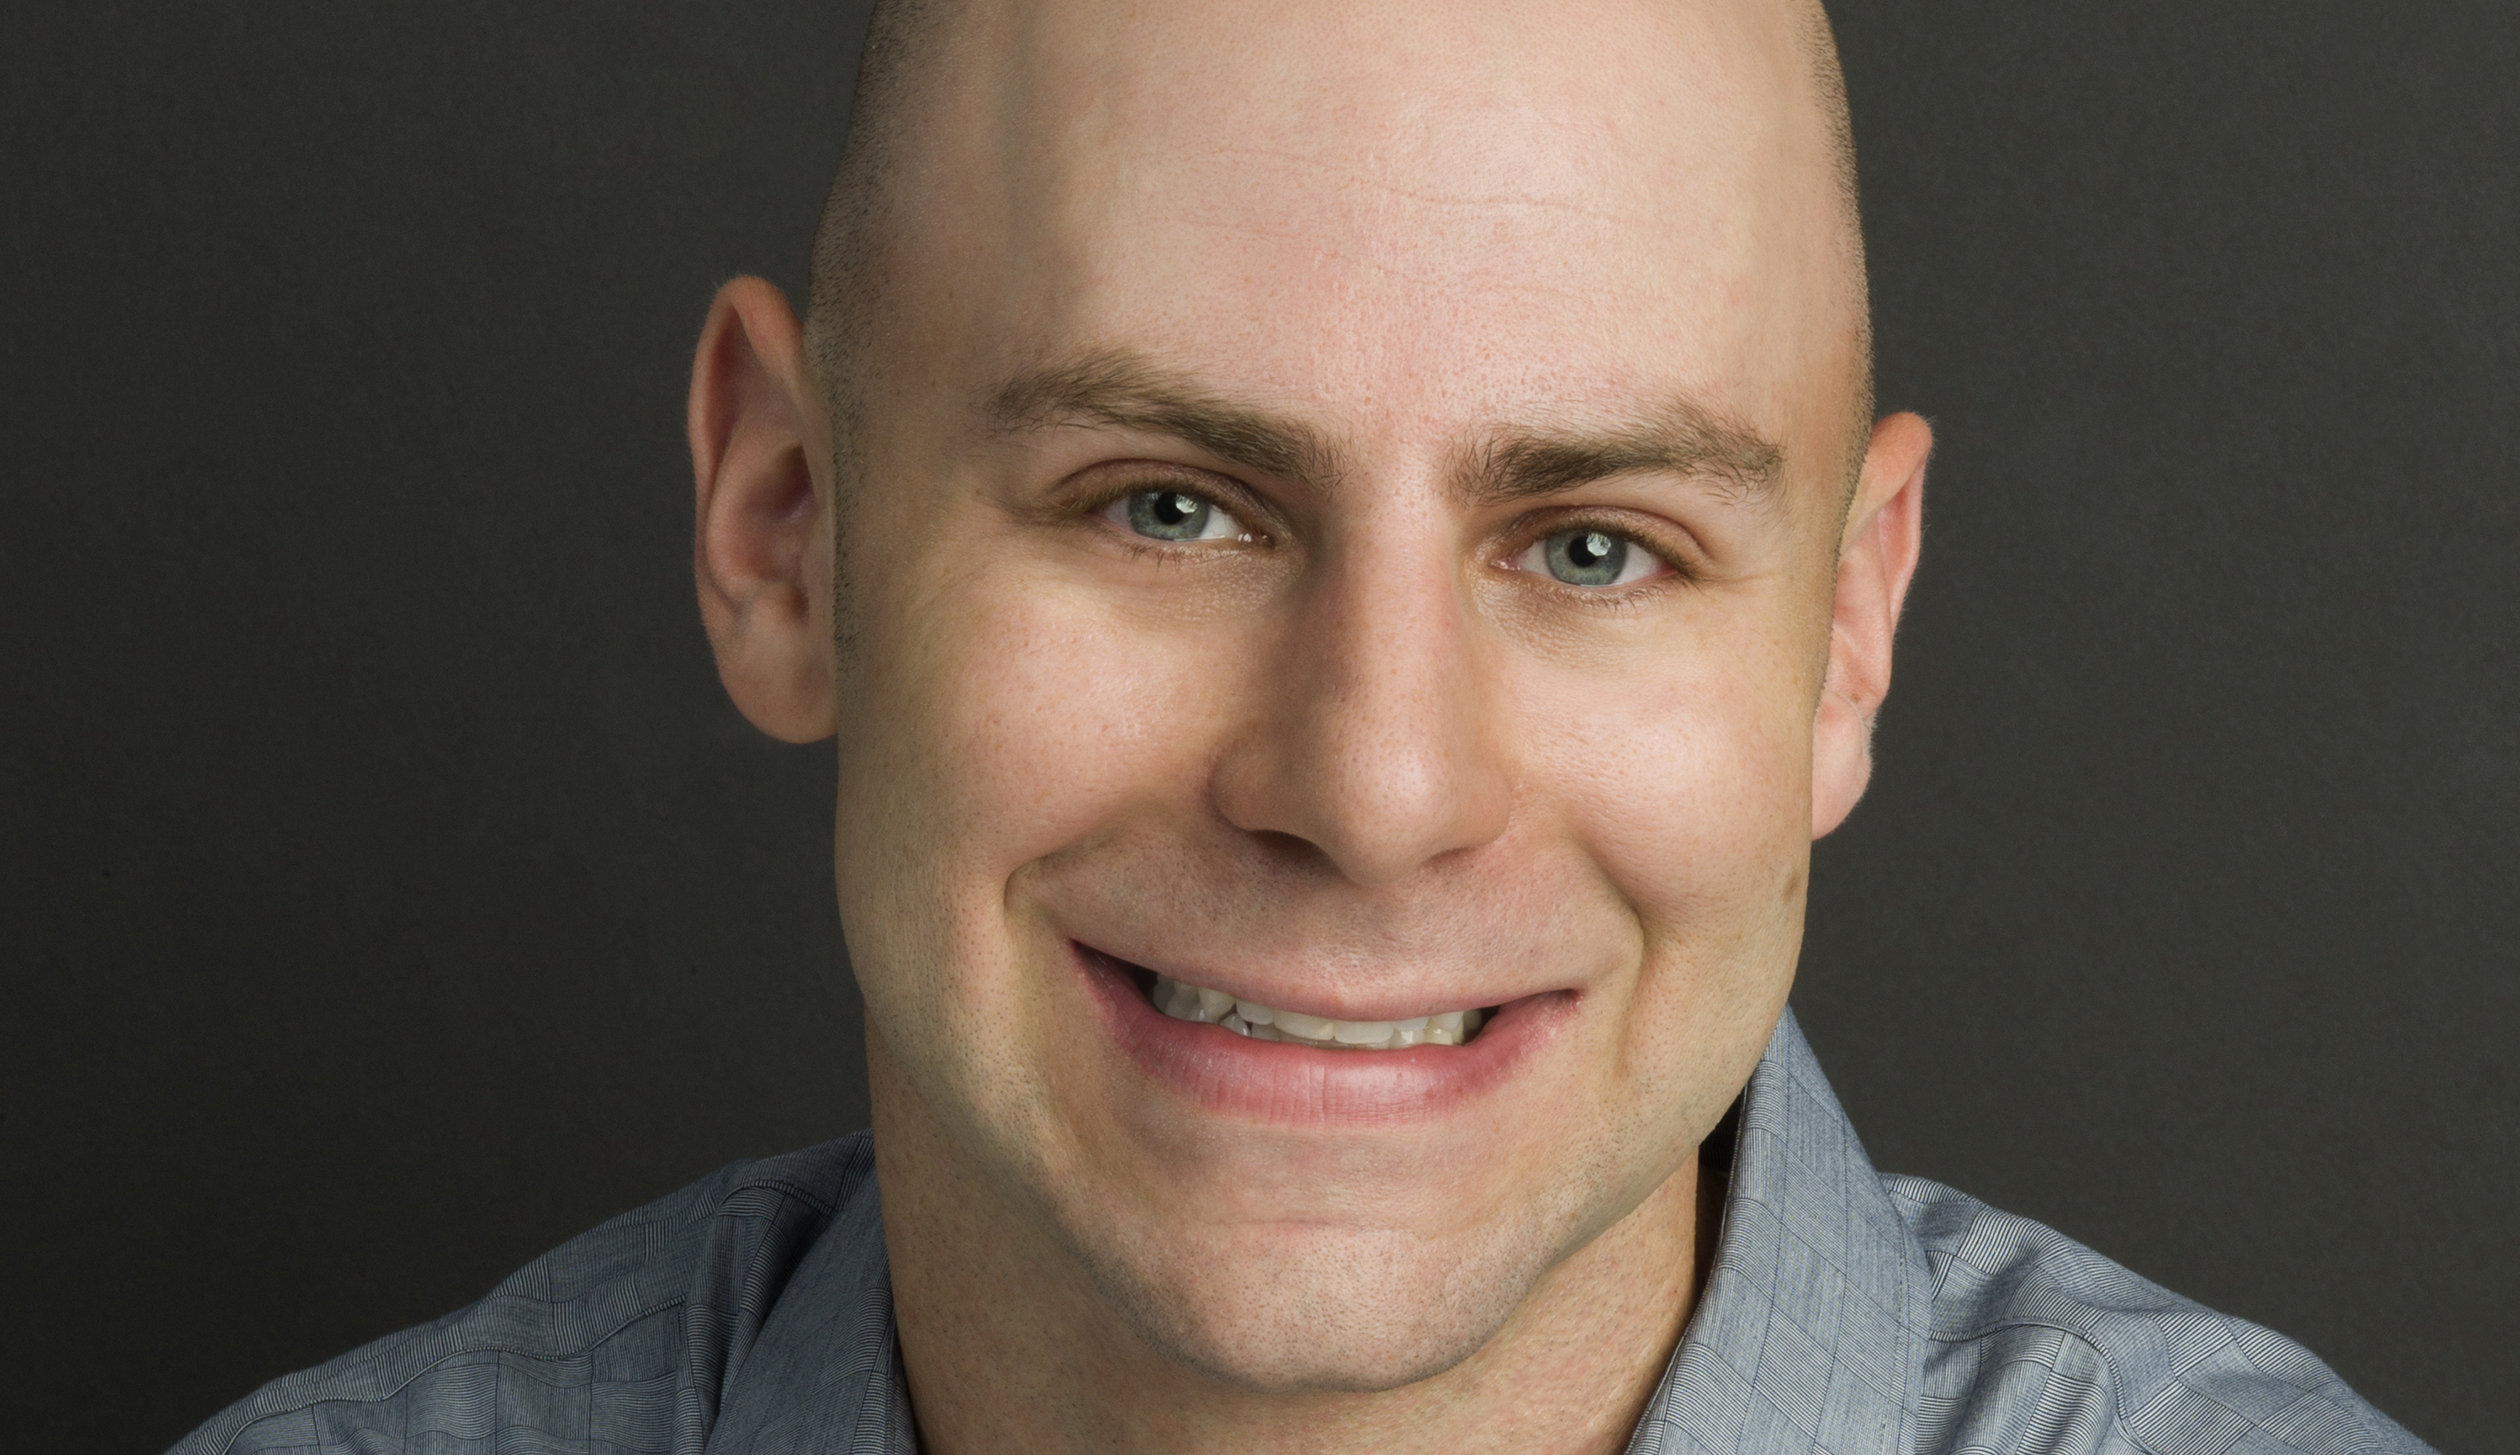 40Under40 profile Adam Grant